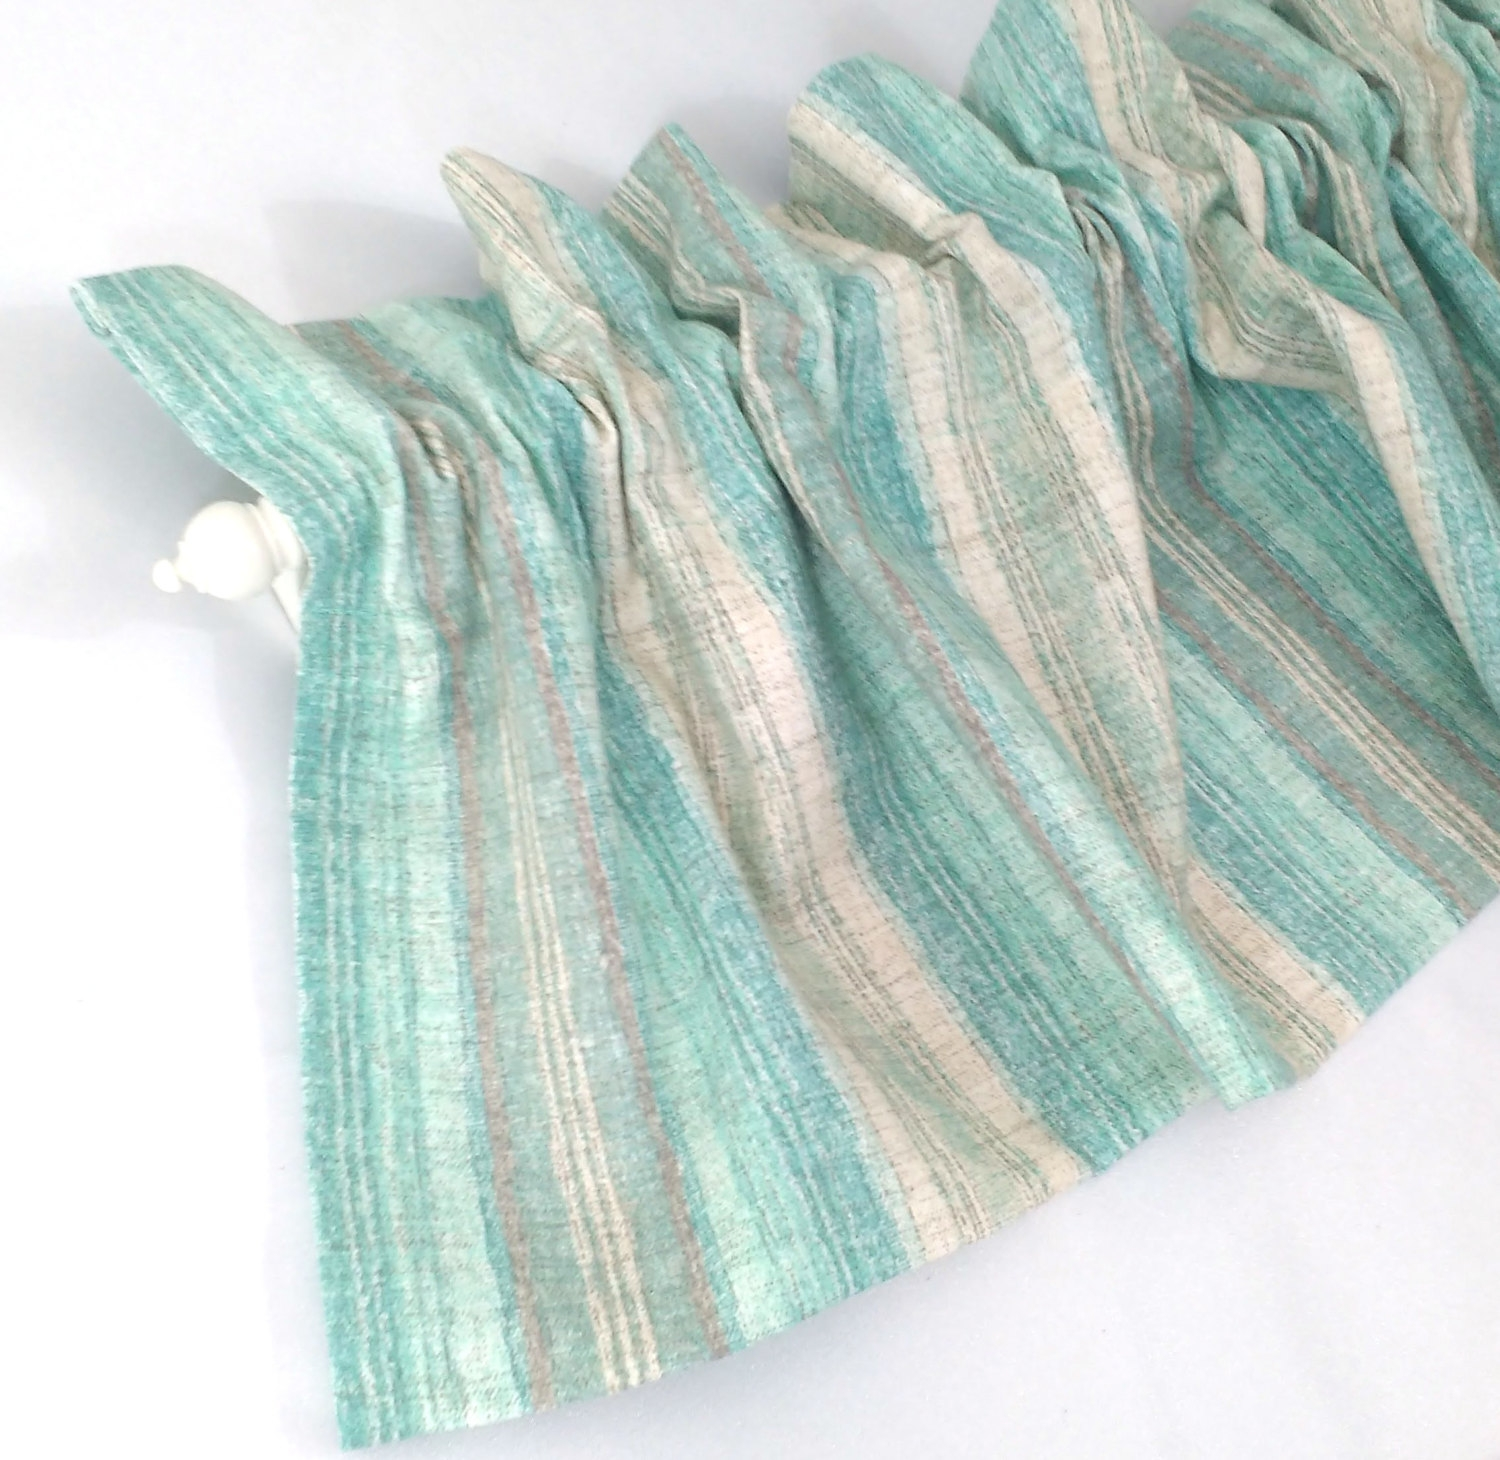 Stripe Curtains Etsy Within Green And Cream Striped Curtains (Image 14 of 15)